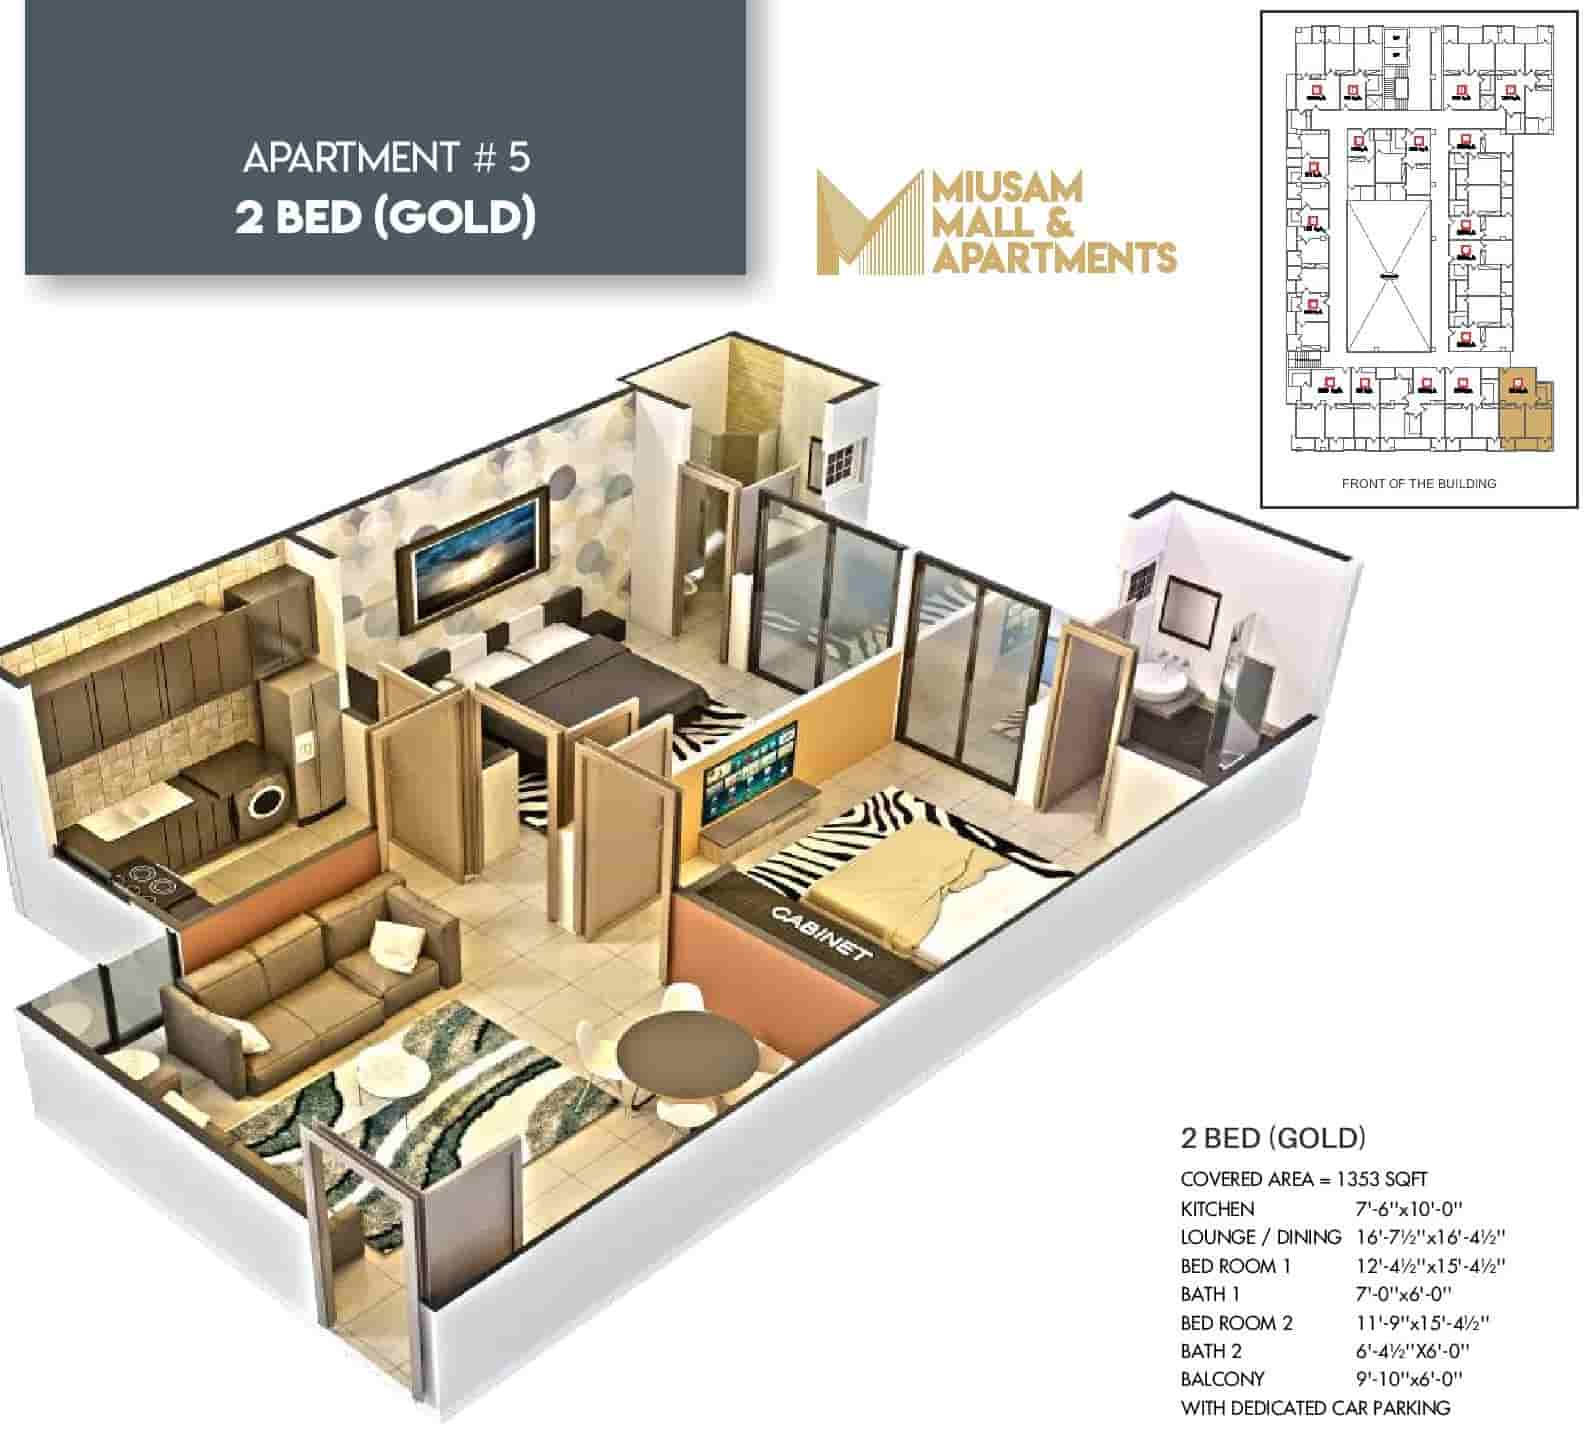 Miusam Mall 2 Bed Gold Apartment 2 Layout